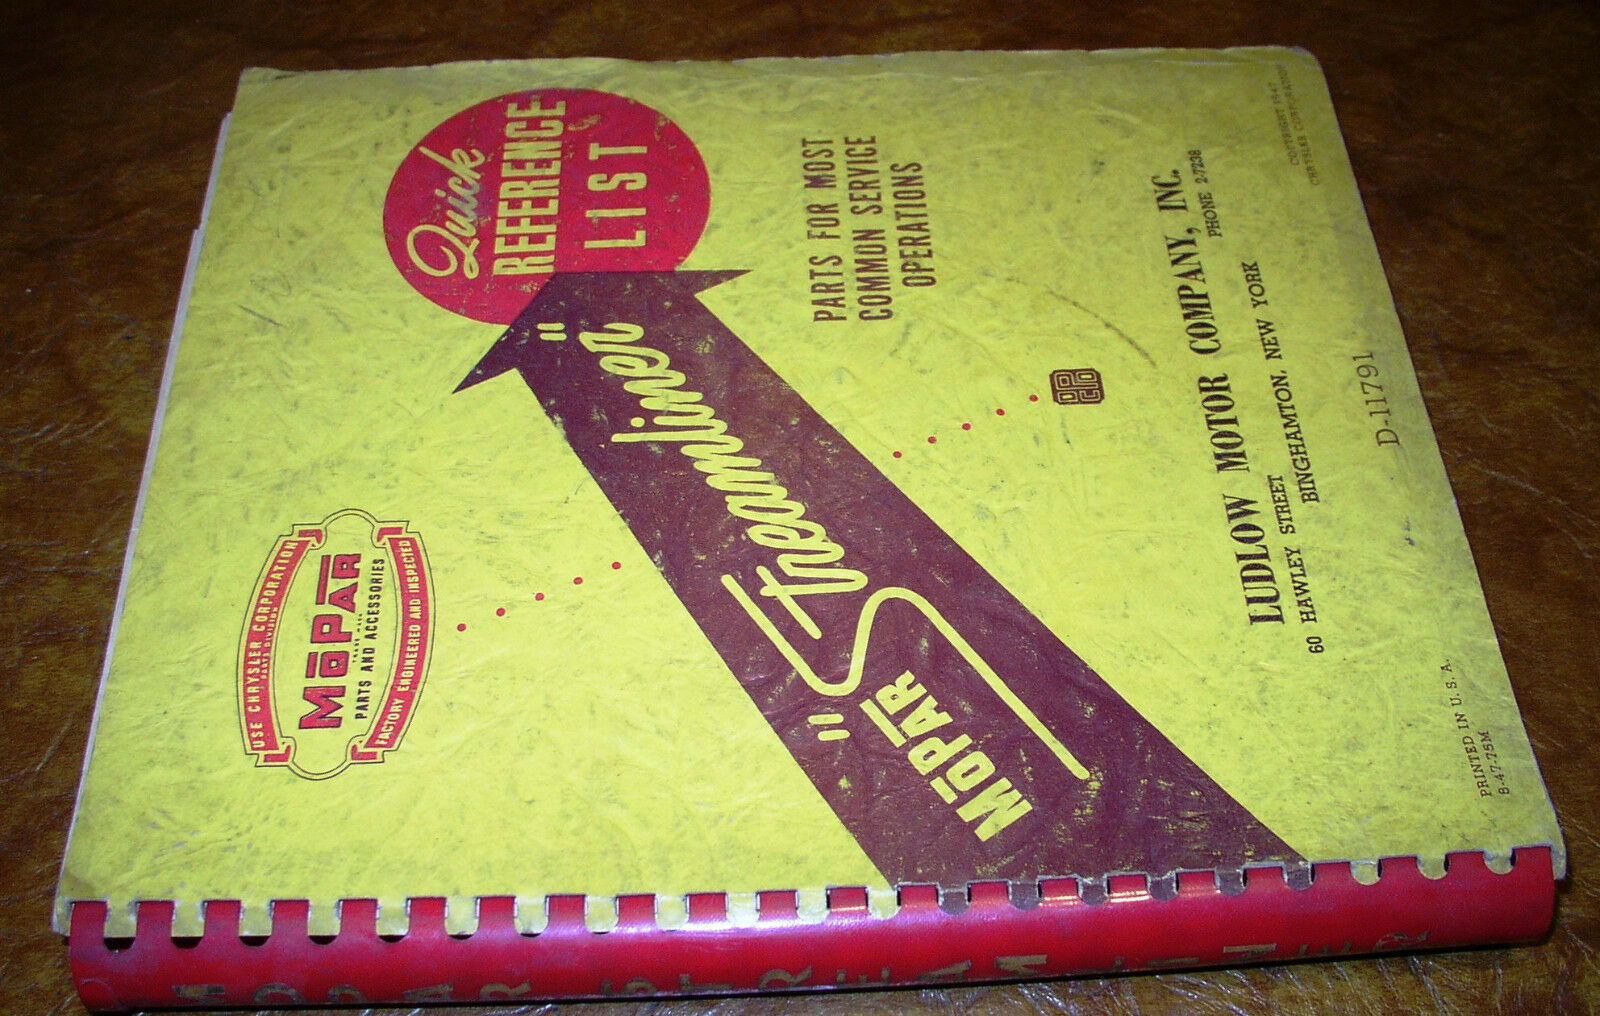 Wondrous Plymouth Desoto Chrysler 1936 1937 1939 1940 1946 1947 Parts Manual Wiring Cloud Hisonuggs Outletorg